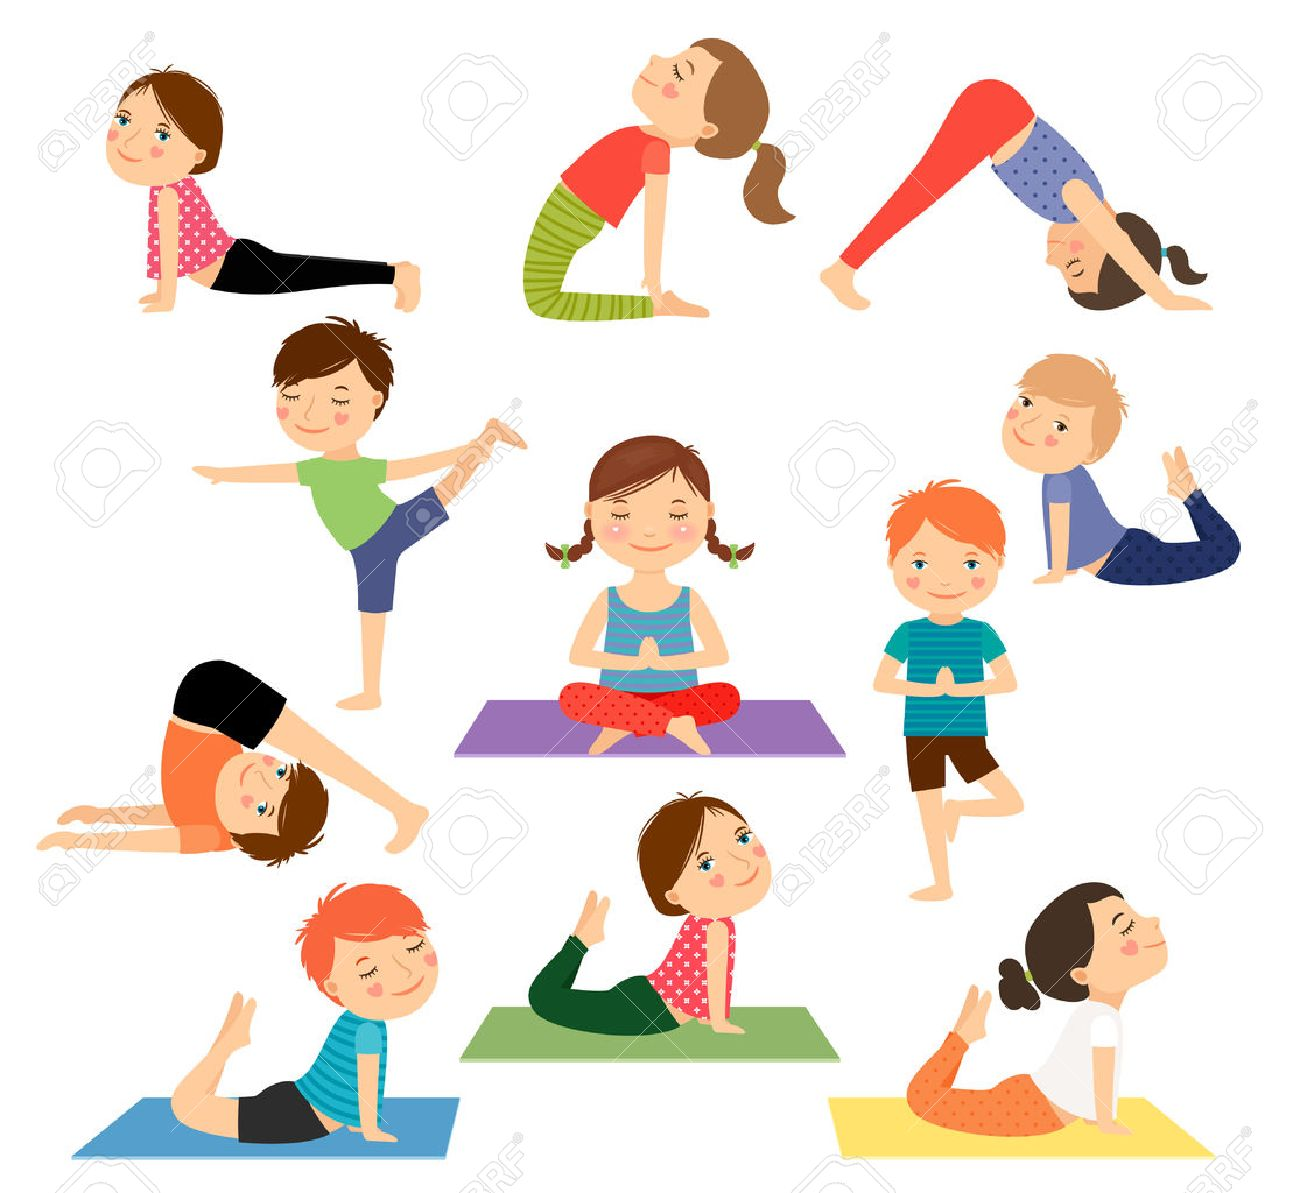 Children Yoga Kids Doing Yoga In Different Yoga Poses Vector Royalty Free Cliparts Vectors And Stock Illustration Image 55346132